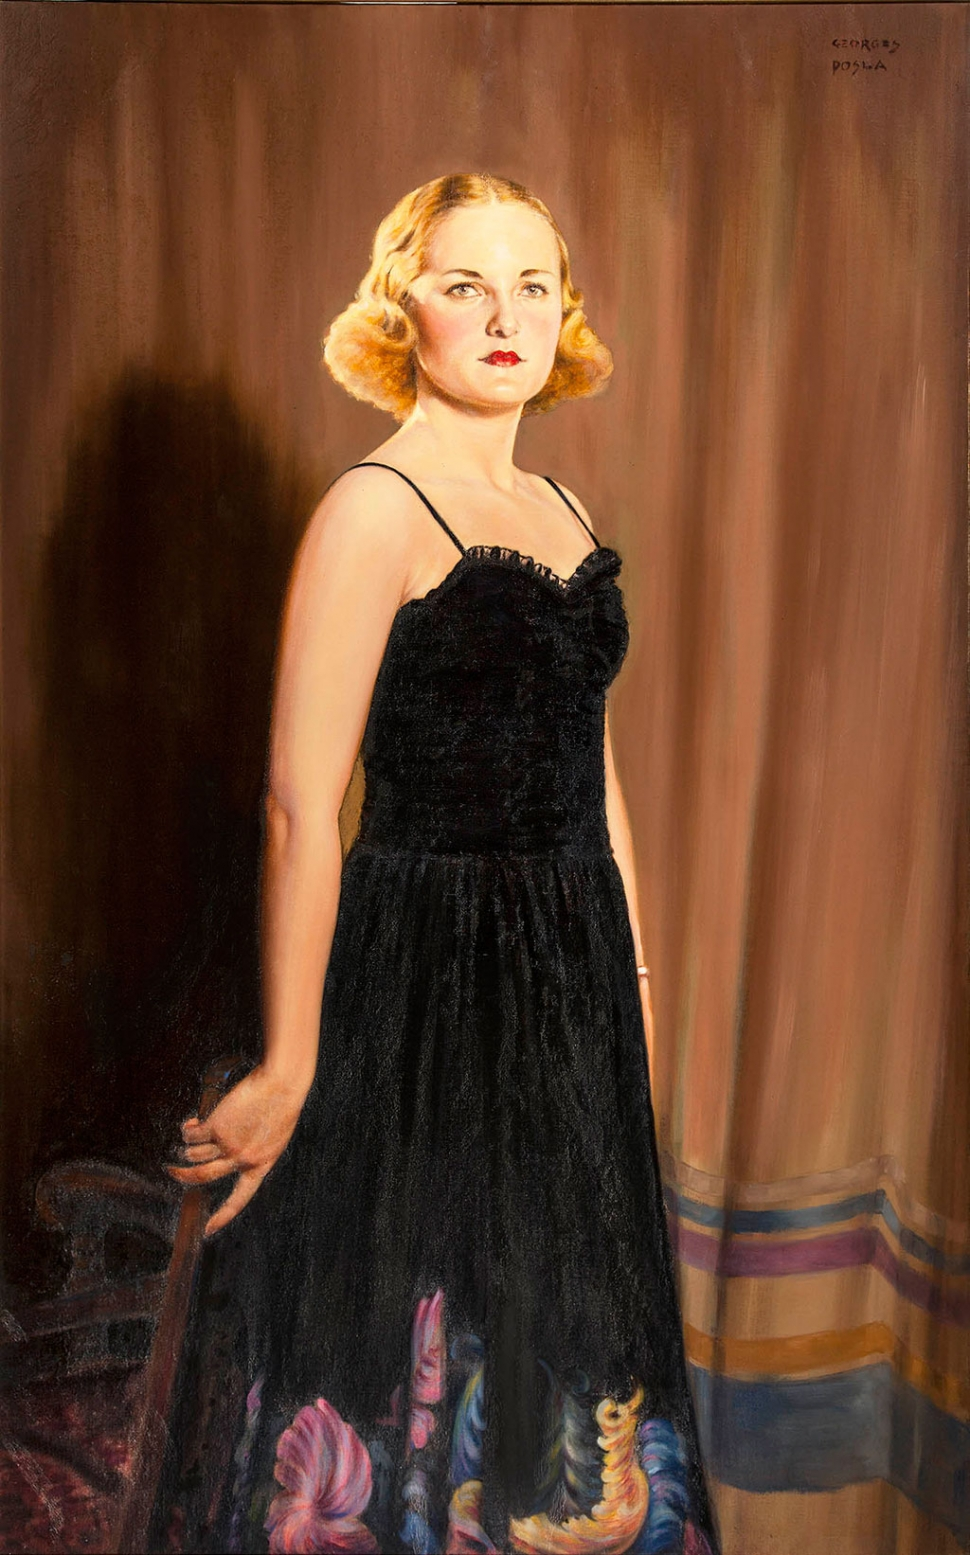 """Kay Haley"" – Artist George's Posla – 1937. On loan from collection of Robert Haley."